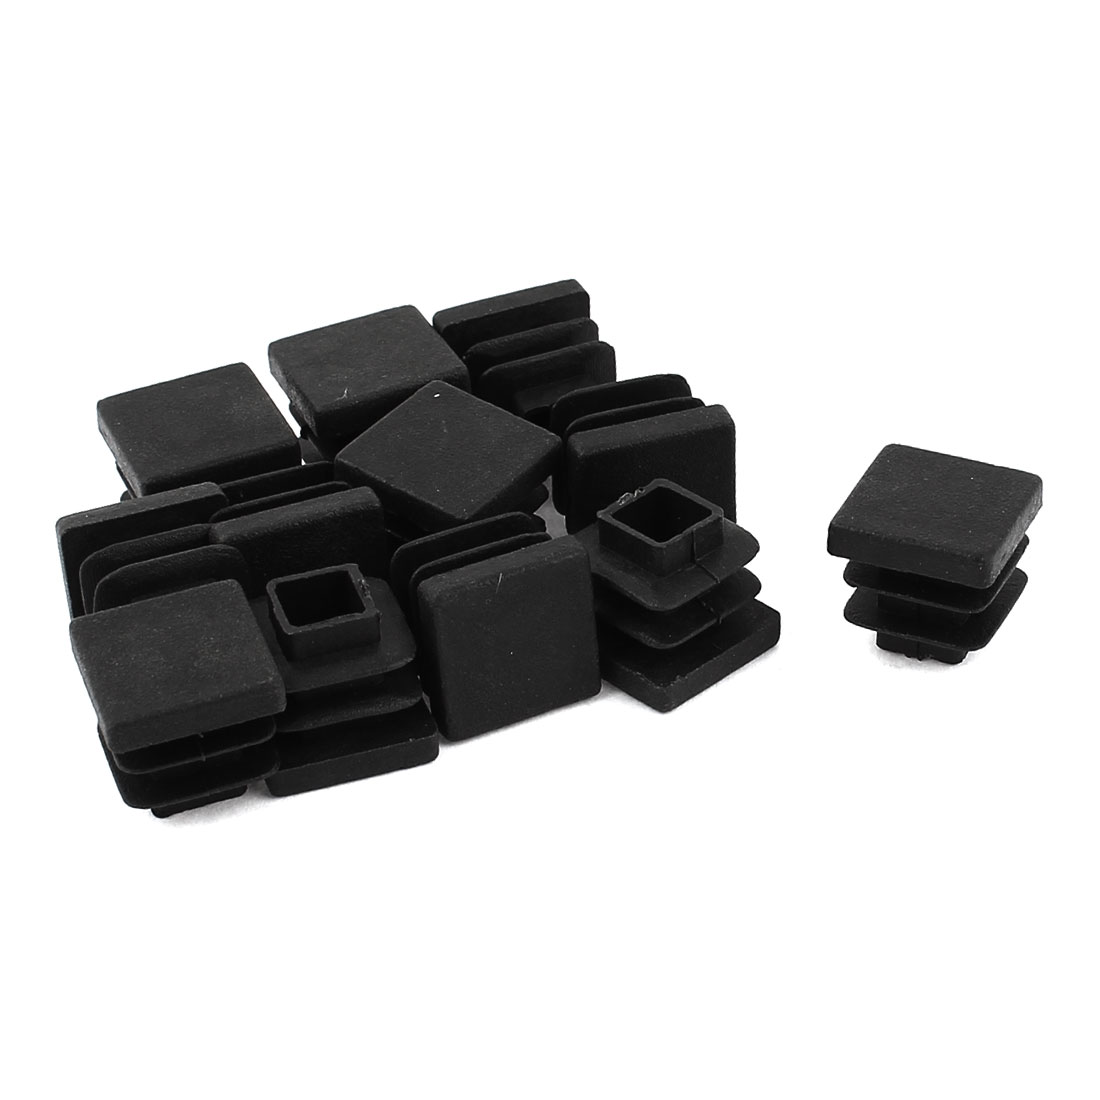 12 Pcs Black Plastic Square Blanking End Caps Tubing Tube Inserts 15mm x 15mm